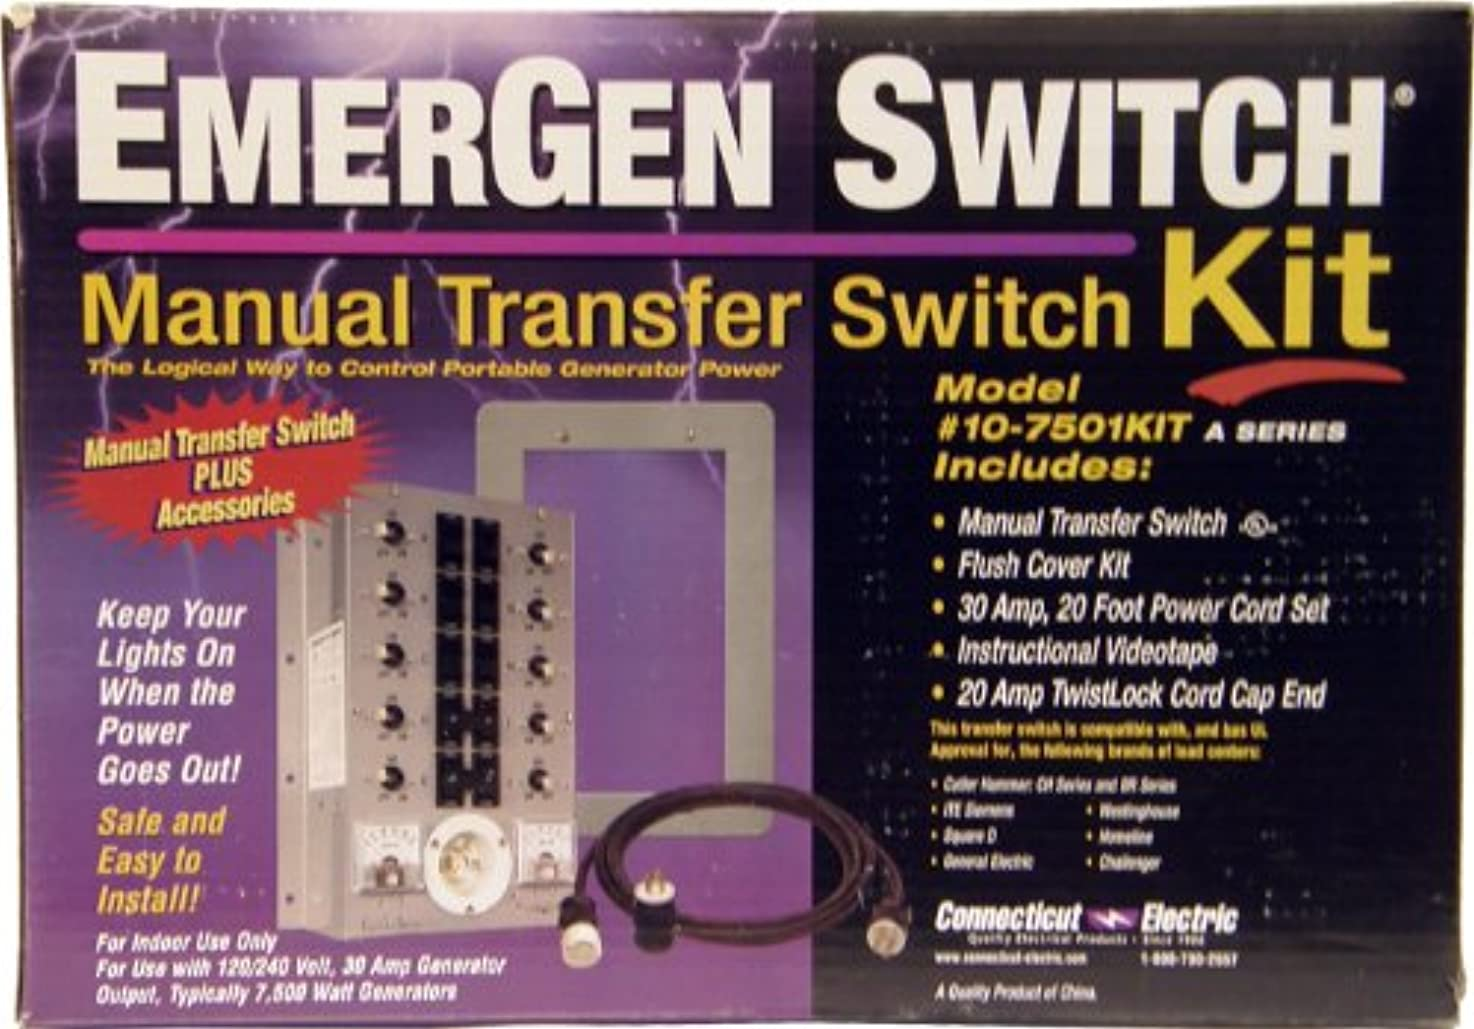 Connecticut Electric EGS107501AKIT Emergen Switch Kit, EGS107501A Switch, Video, Flush Cover and Power Cord